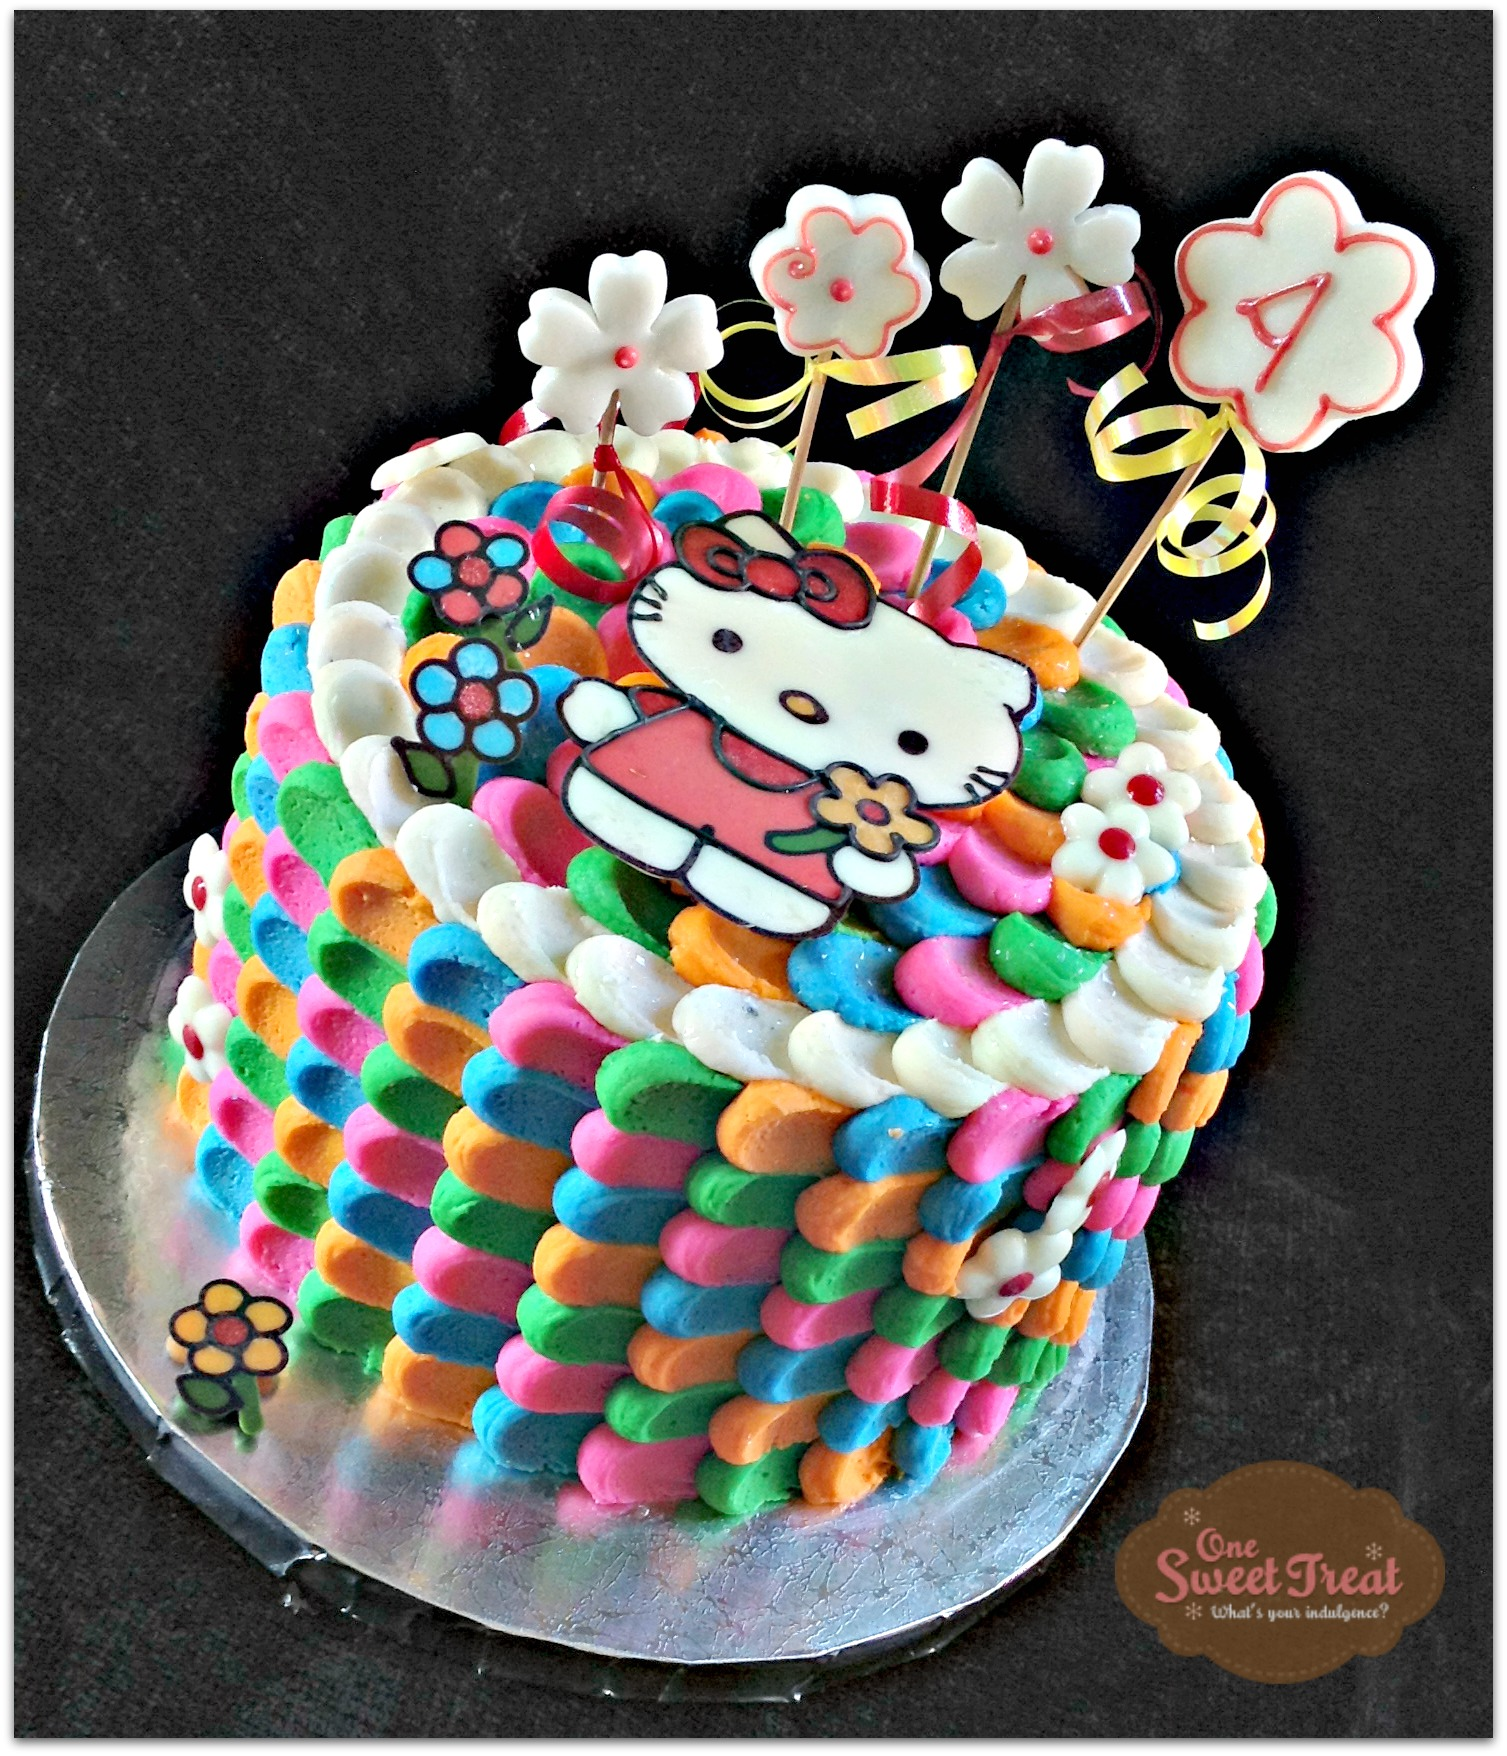 One Sweet Treat Hello Kitty Cake and Cookies